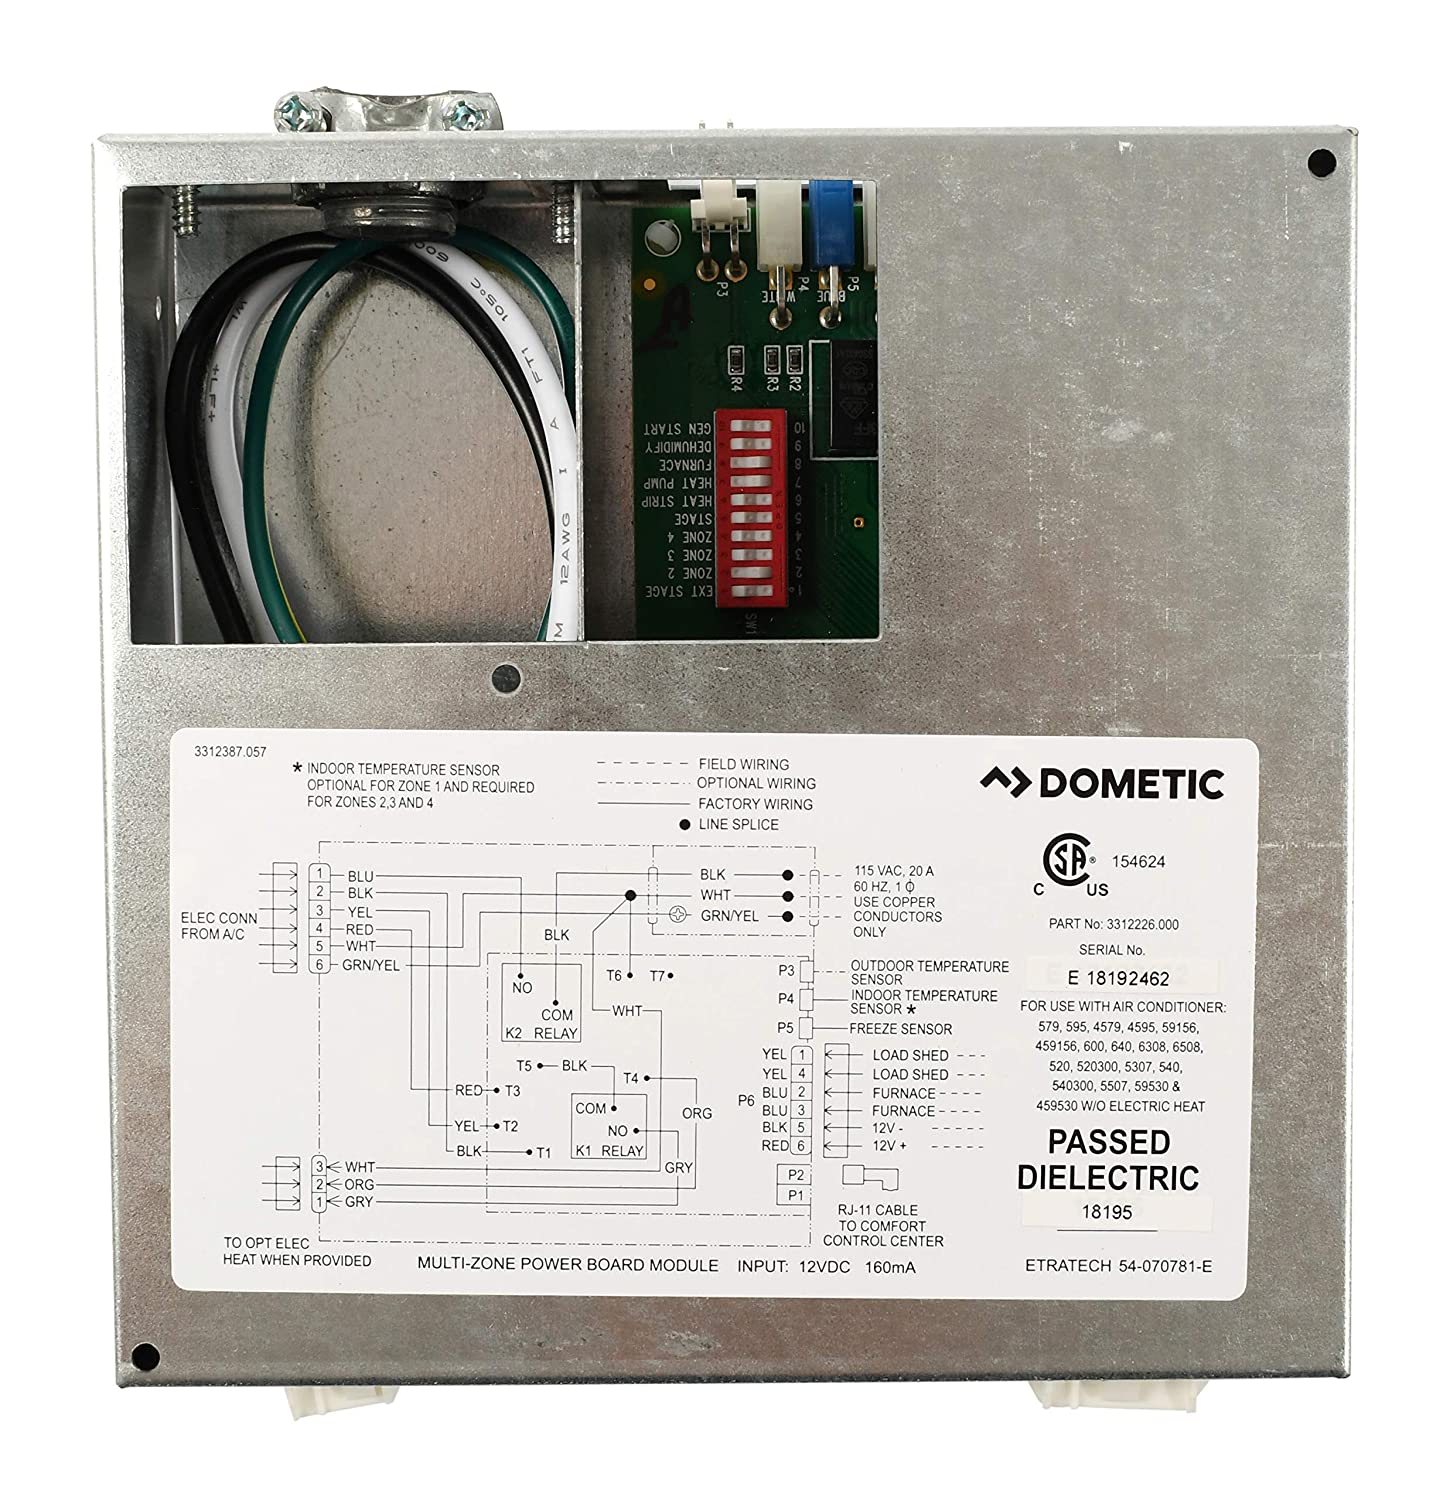 Dometic Duo Therm Thermostat Wiring Diagram Also Honeywell Thermostat